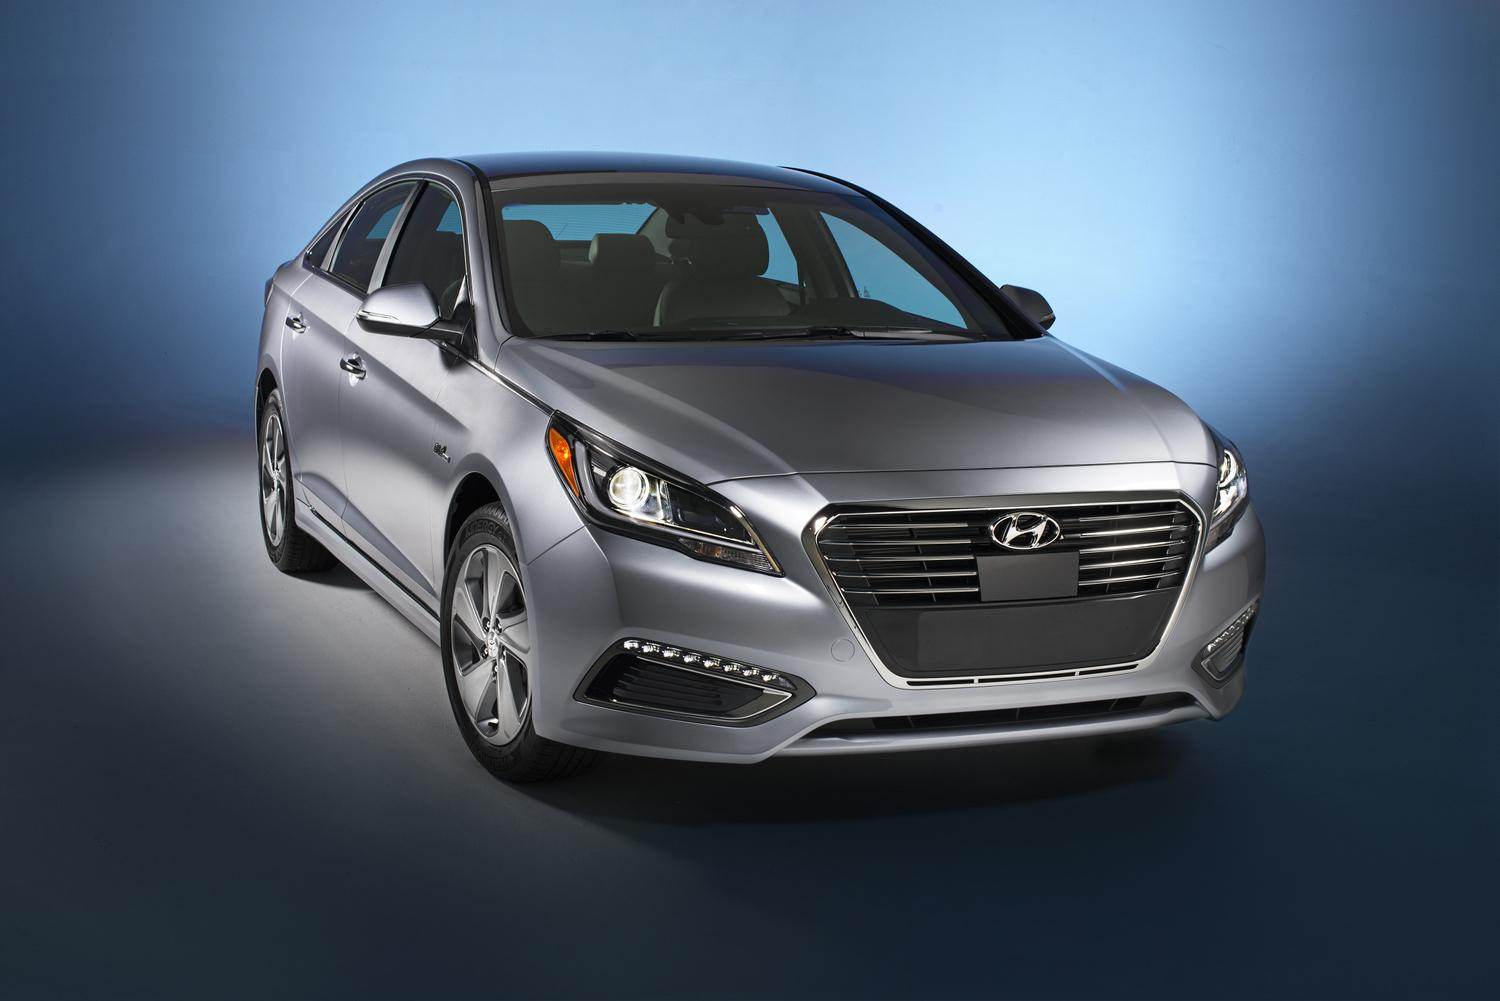 2016 hyundai sonata hybrid official specs pictures digital trends. Black Bedroom Furniture Sets. Home Design Ideas